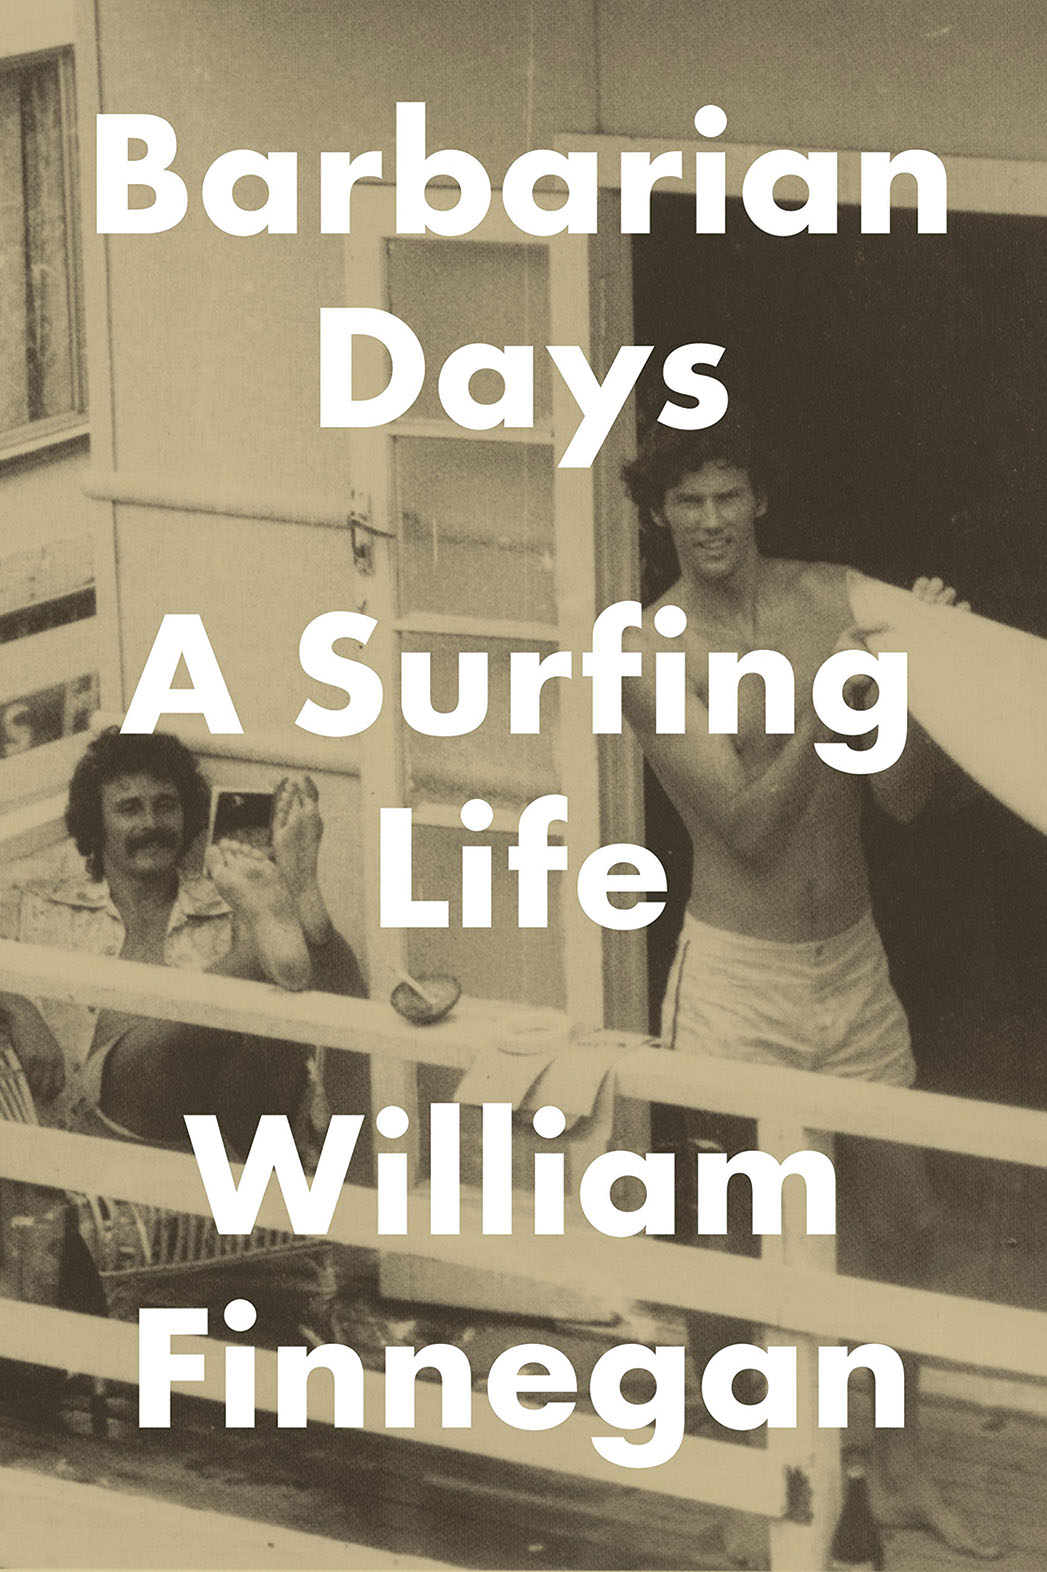 Barbarian Days A Surfing Life Cover - P 2015